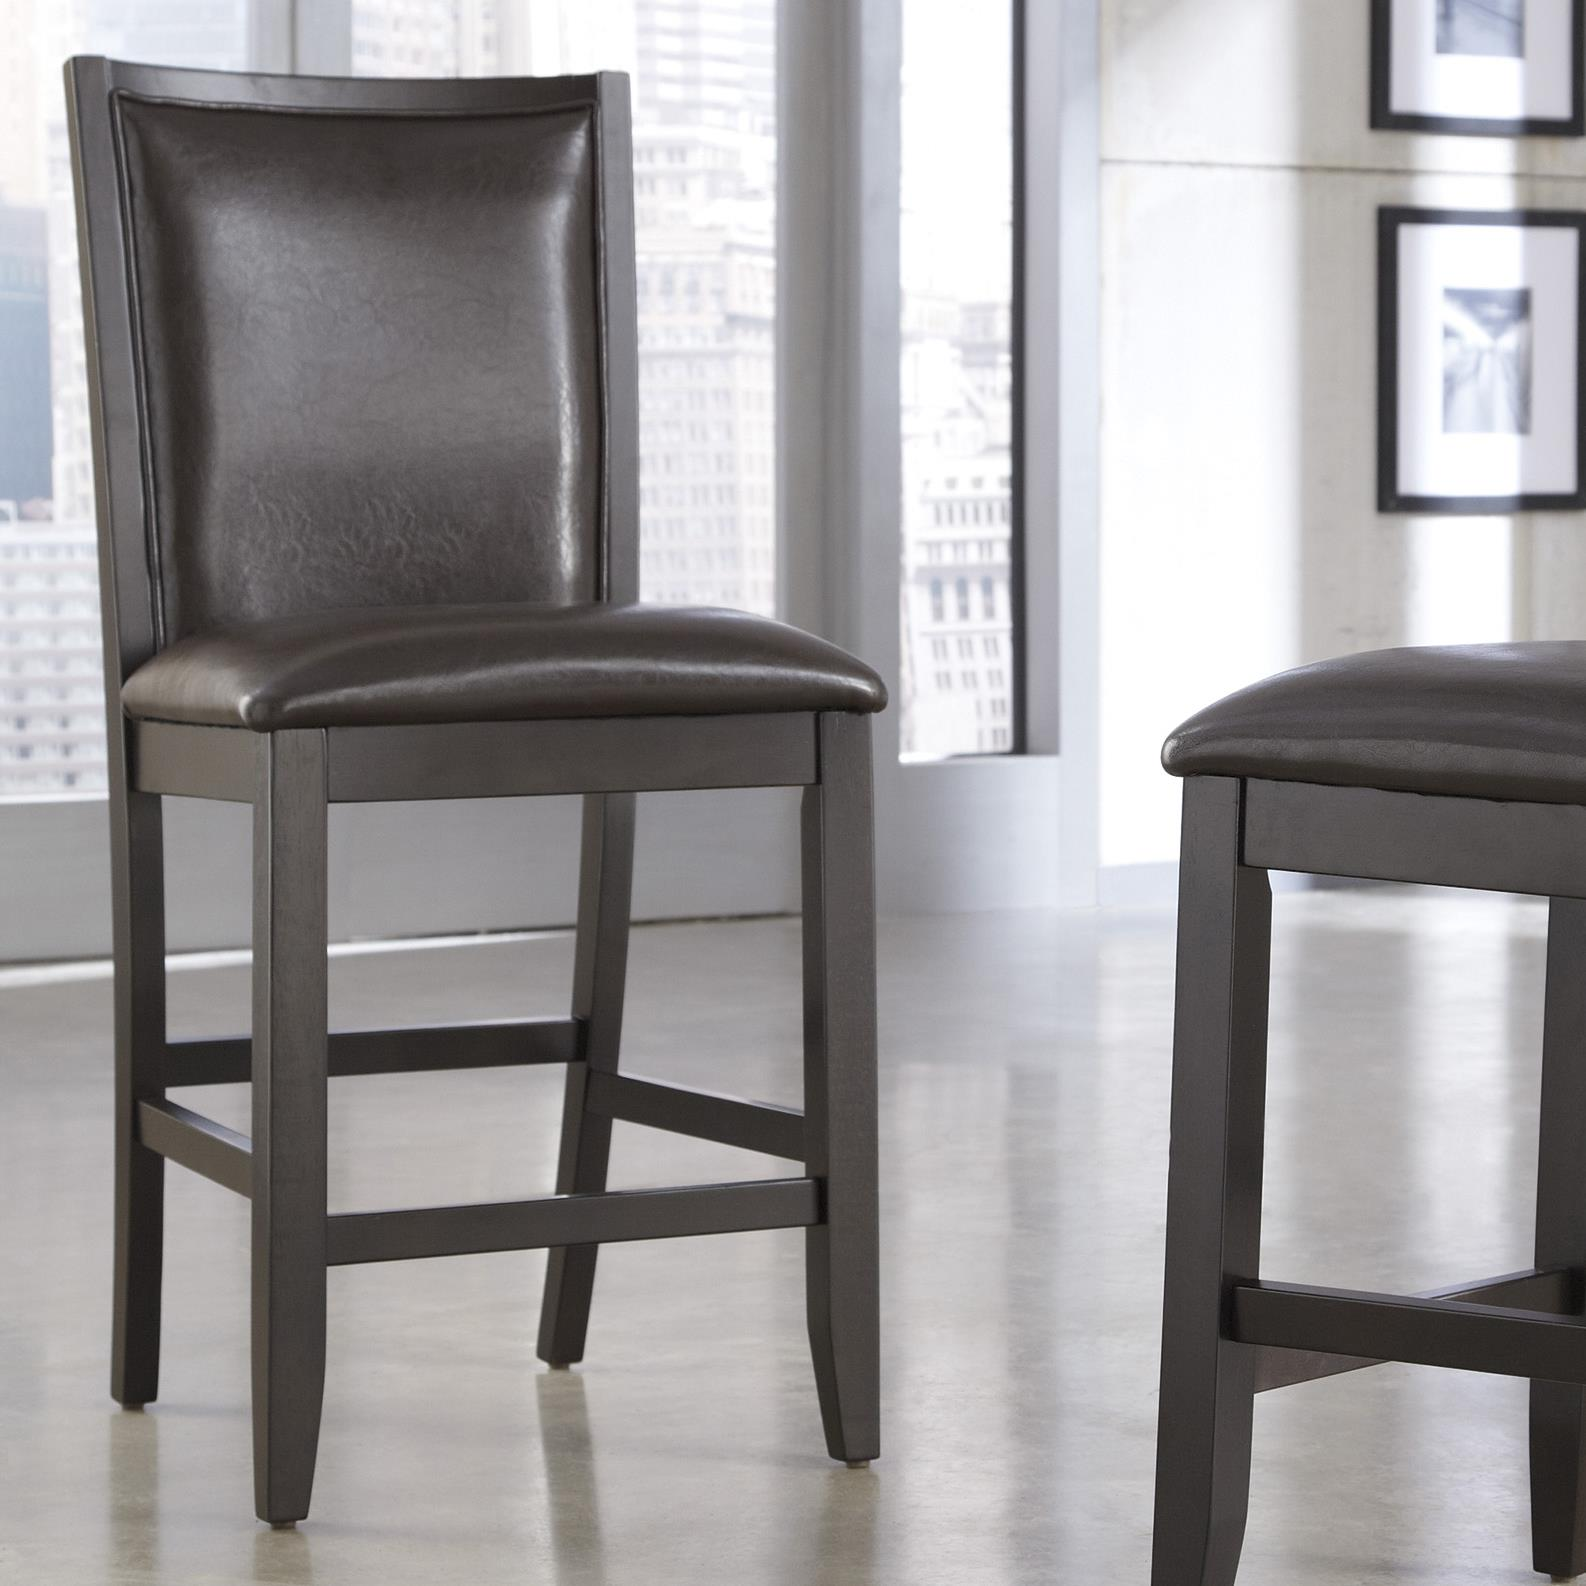 Ashley Furniture Trishelle Upholstered Barstool - Item Number: D550-224